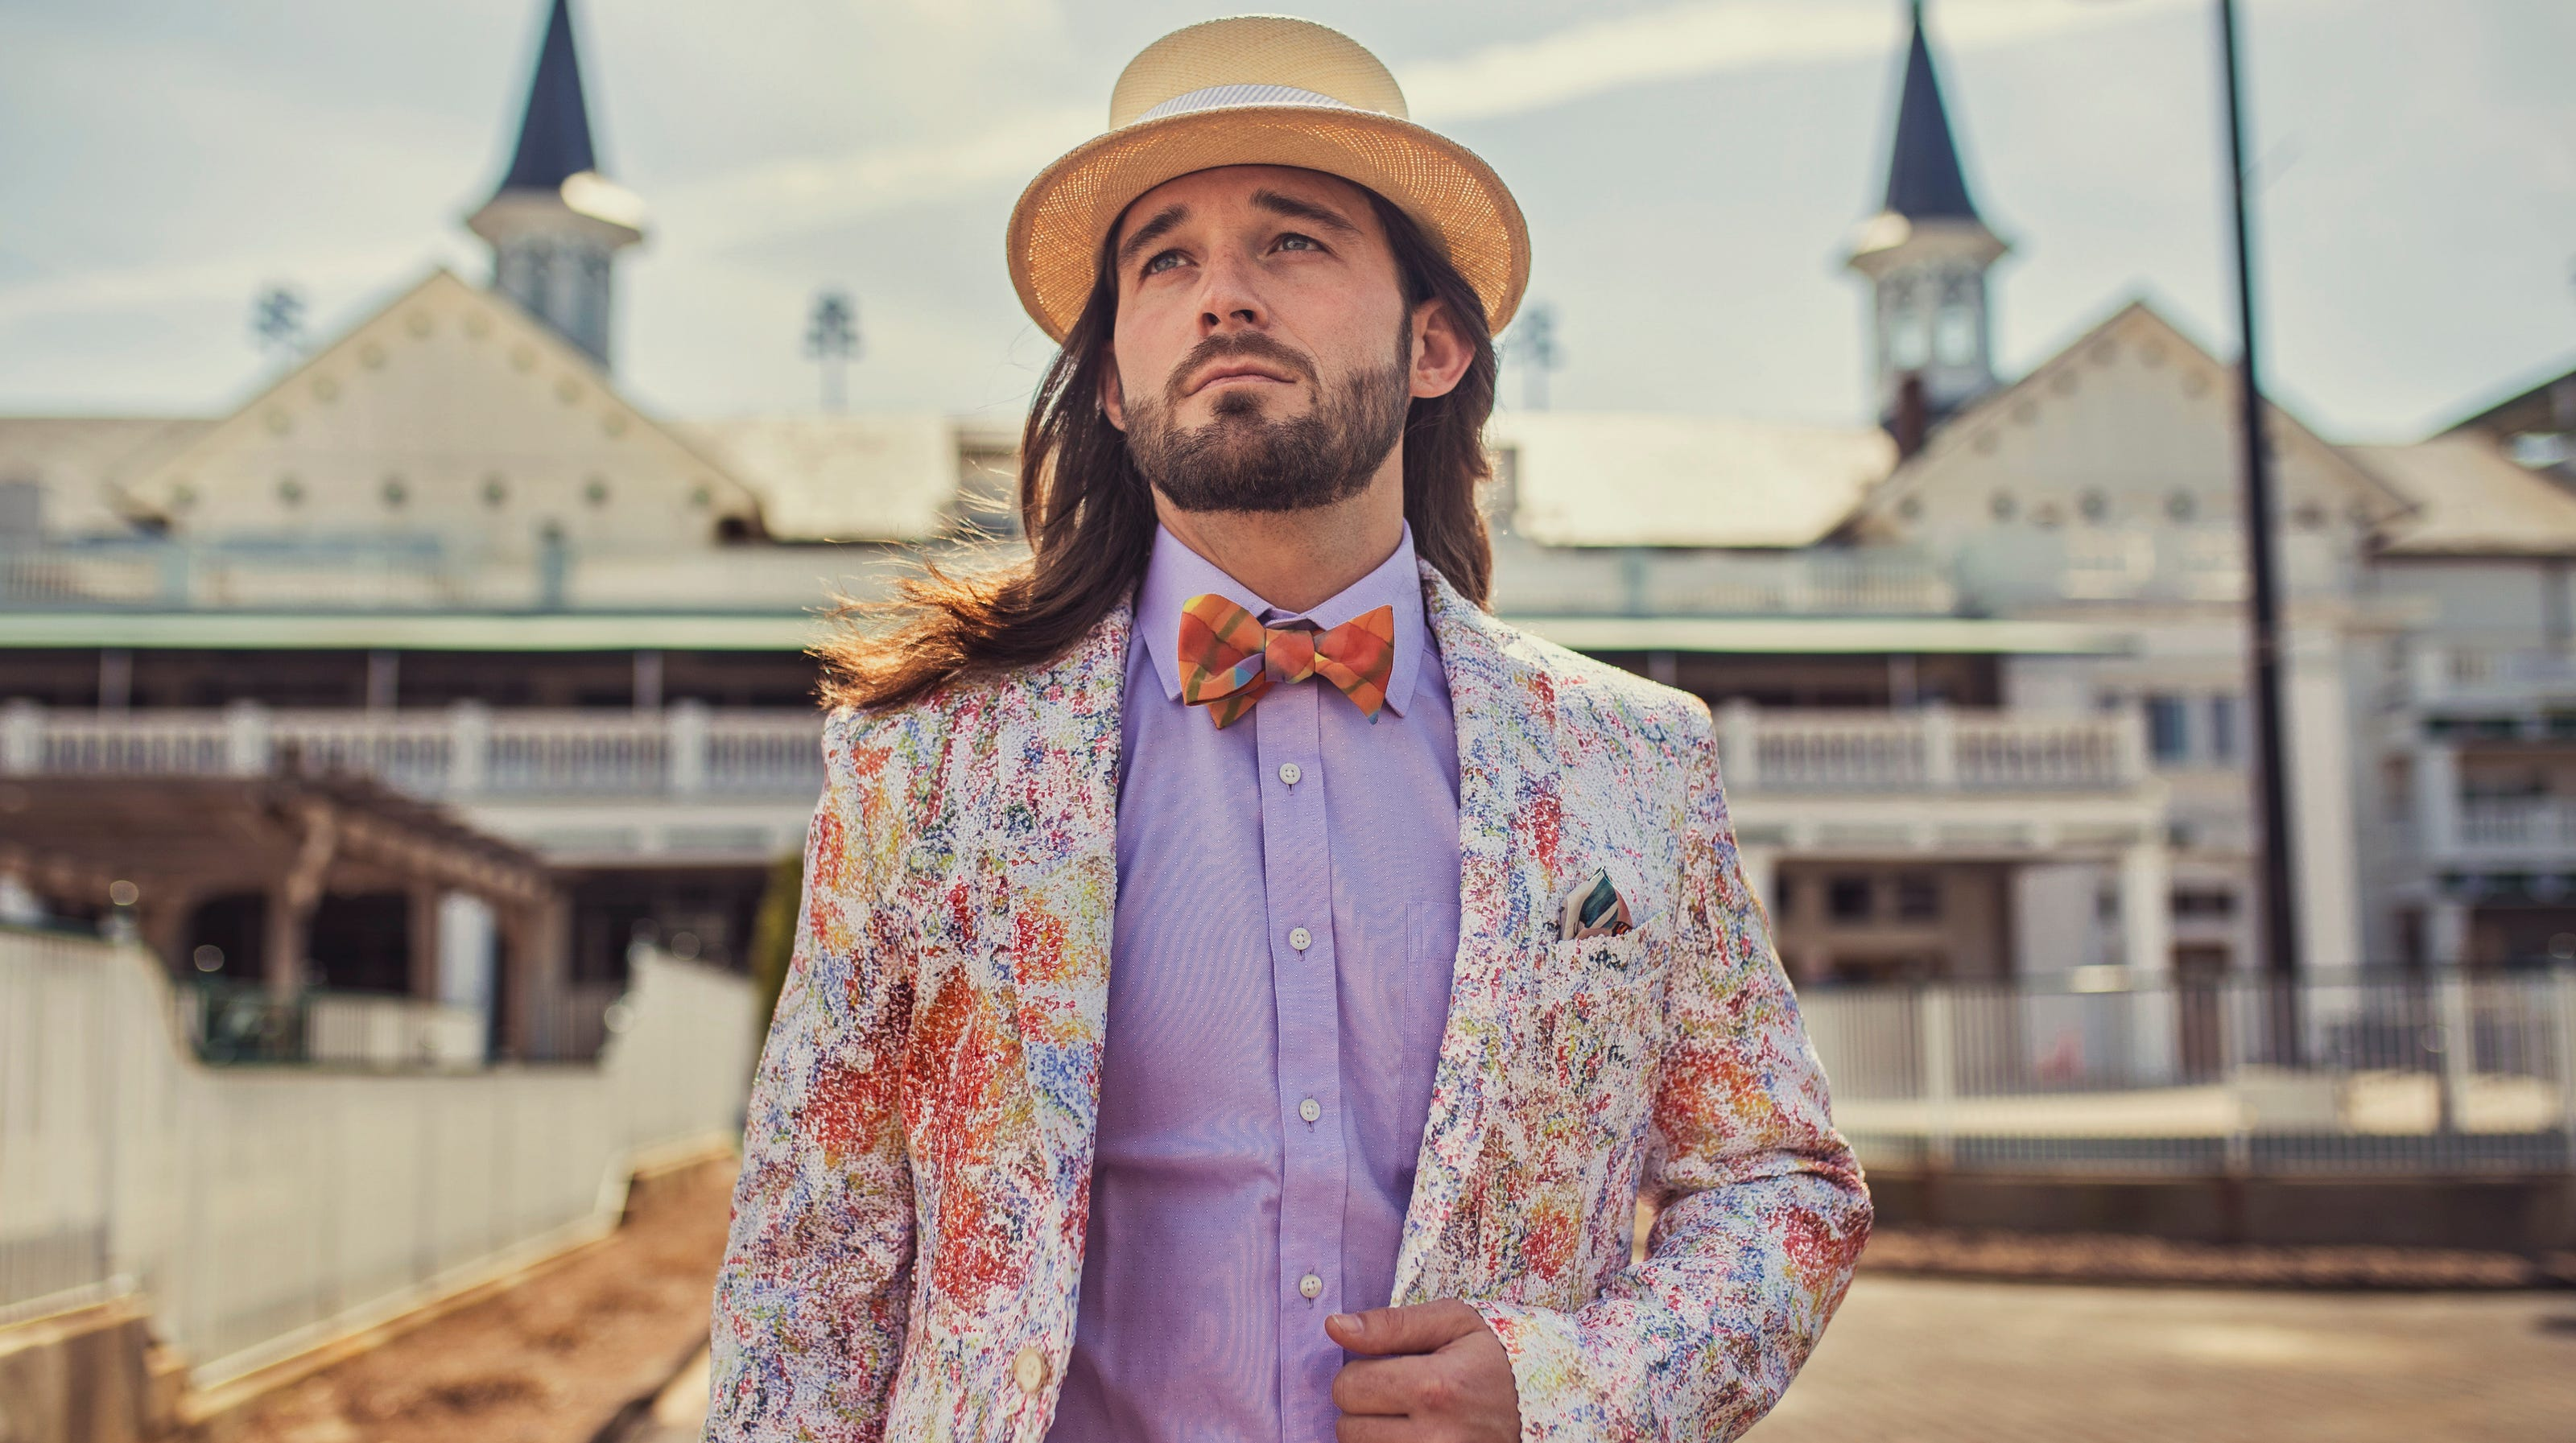 Kentucky Derby Outfits For Guys 2019 Men S Attire Hats Bow Ties